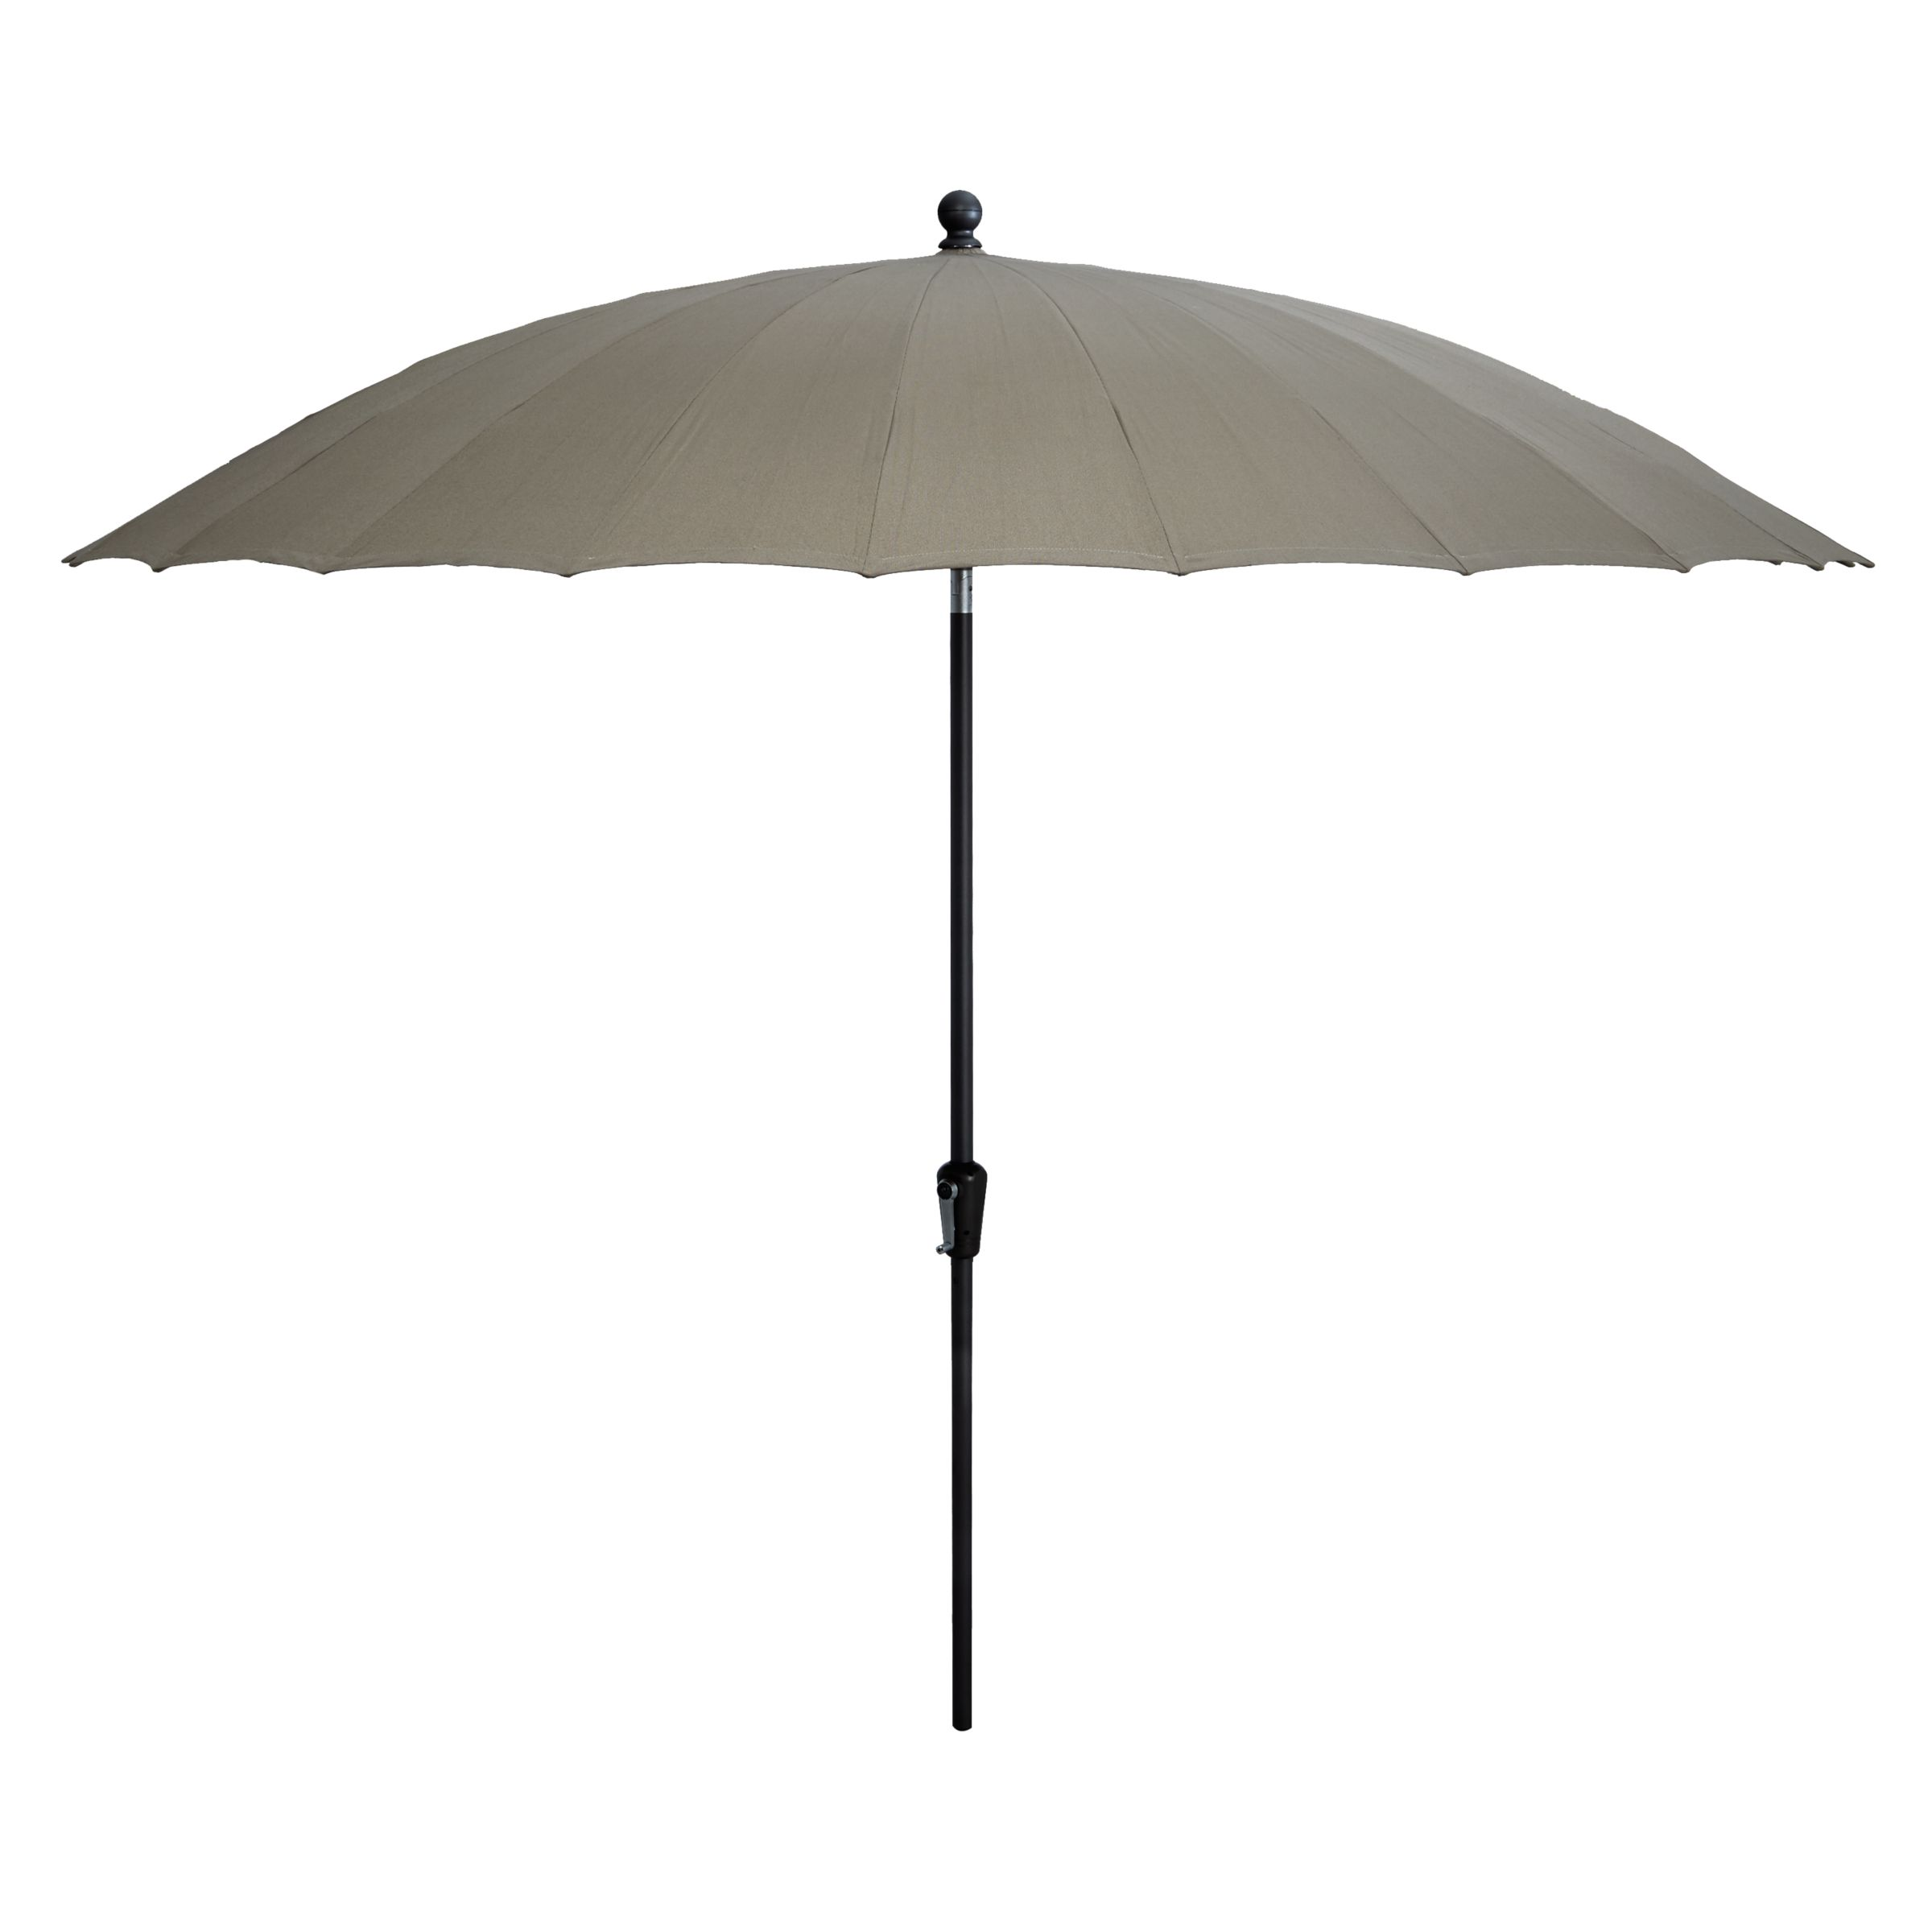 Parasol Taupe 4 Seasons Outdoor Shanghai Tilting Round Parasol Taupe 3m At